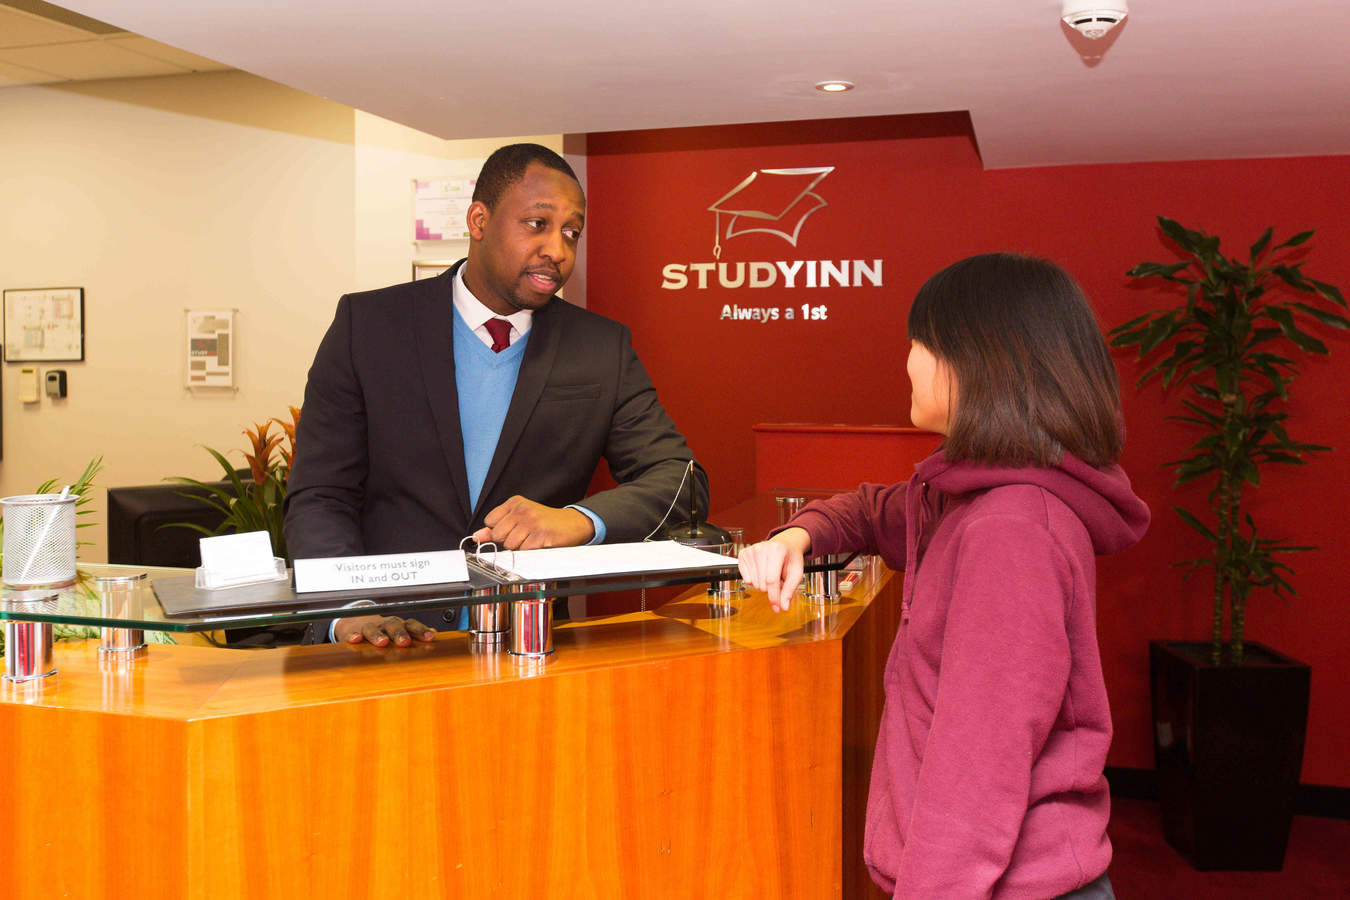 Study_inn_student_acc__(97_of_252)_converted